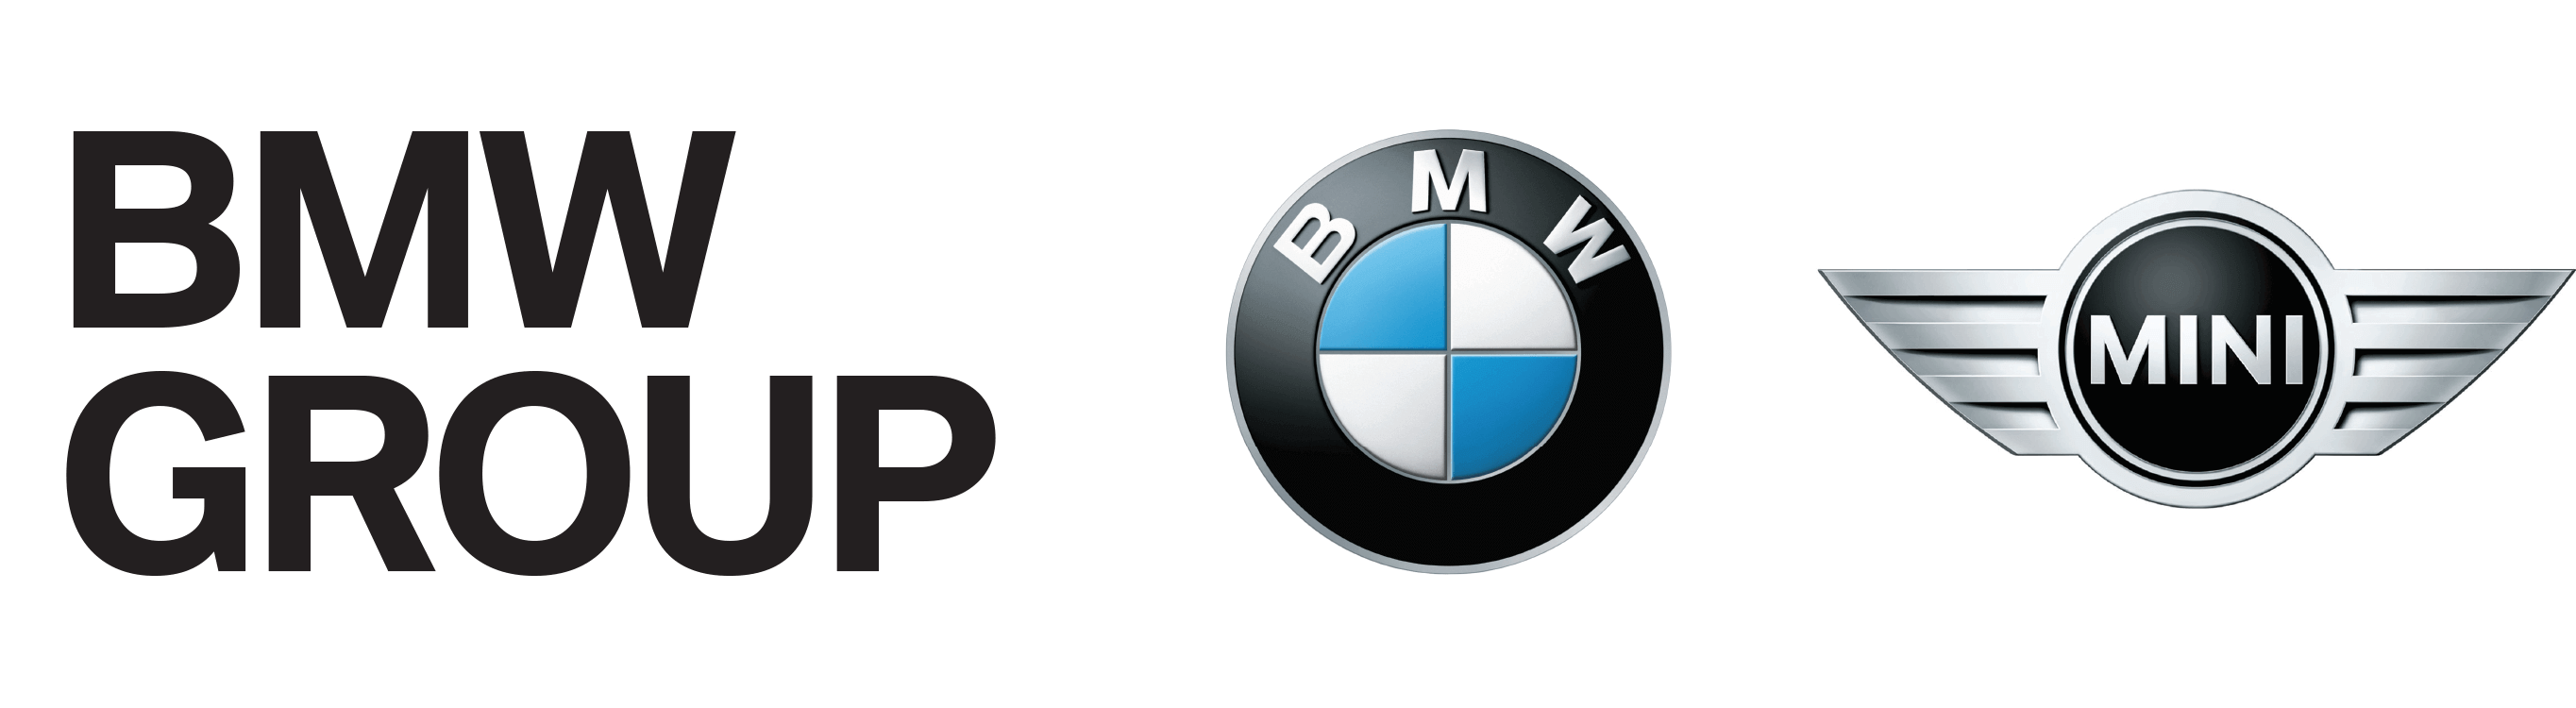 BMW brings mixed reality to automotive design with Unreal Engine